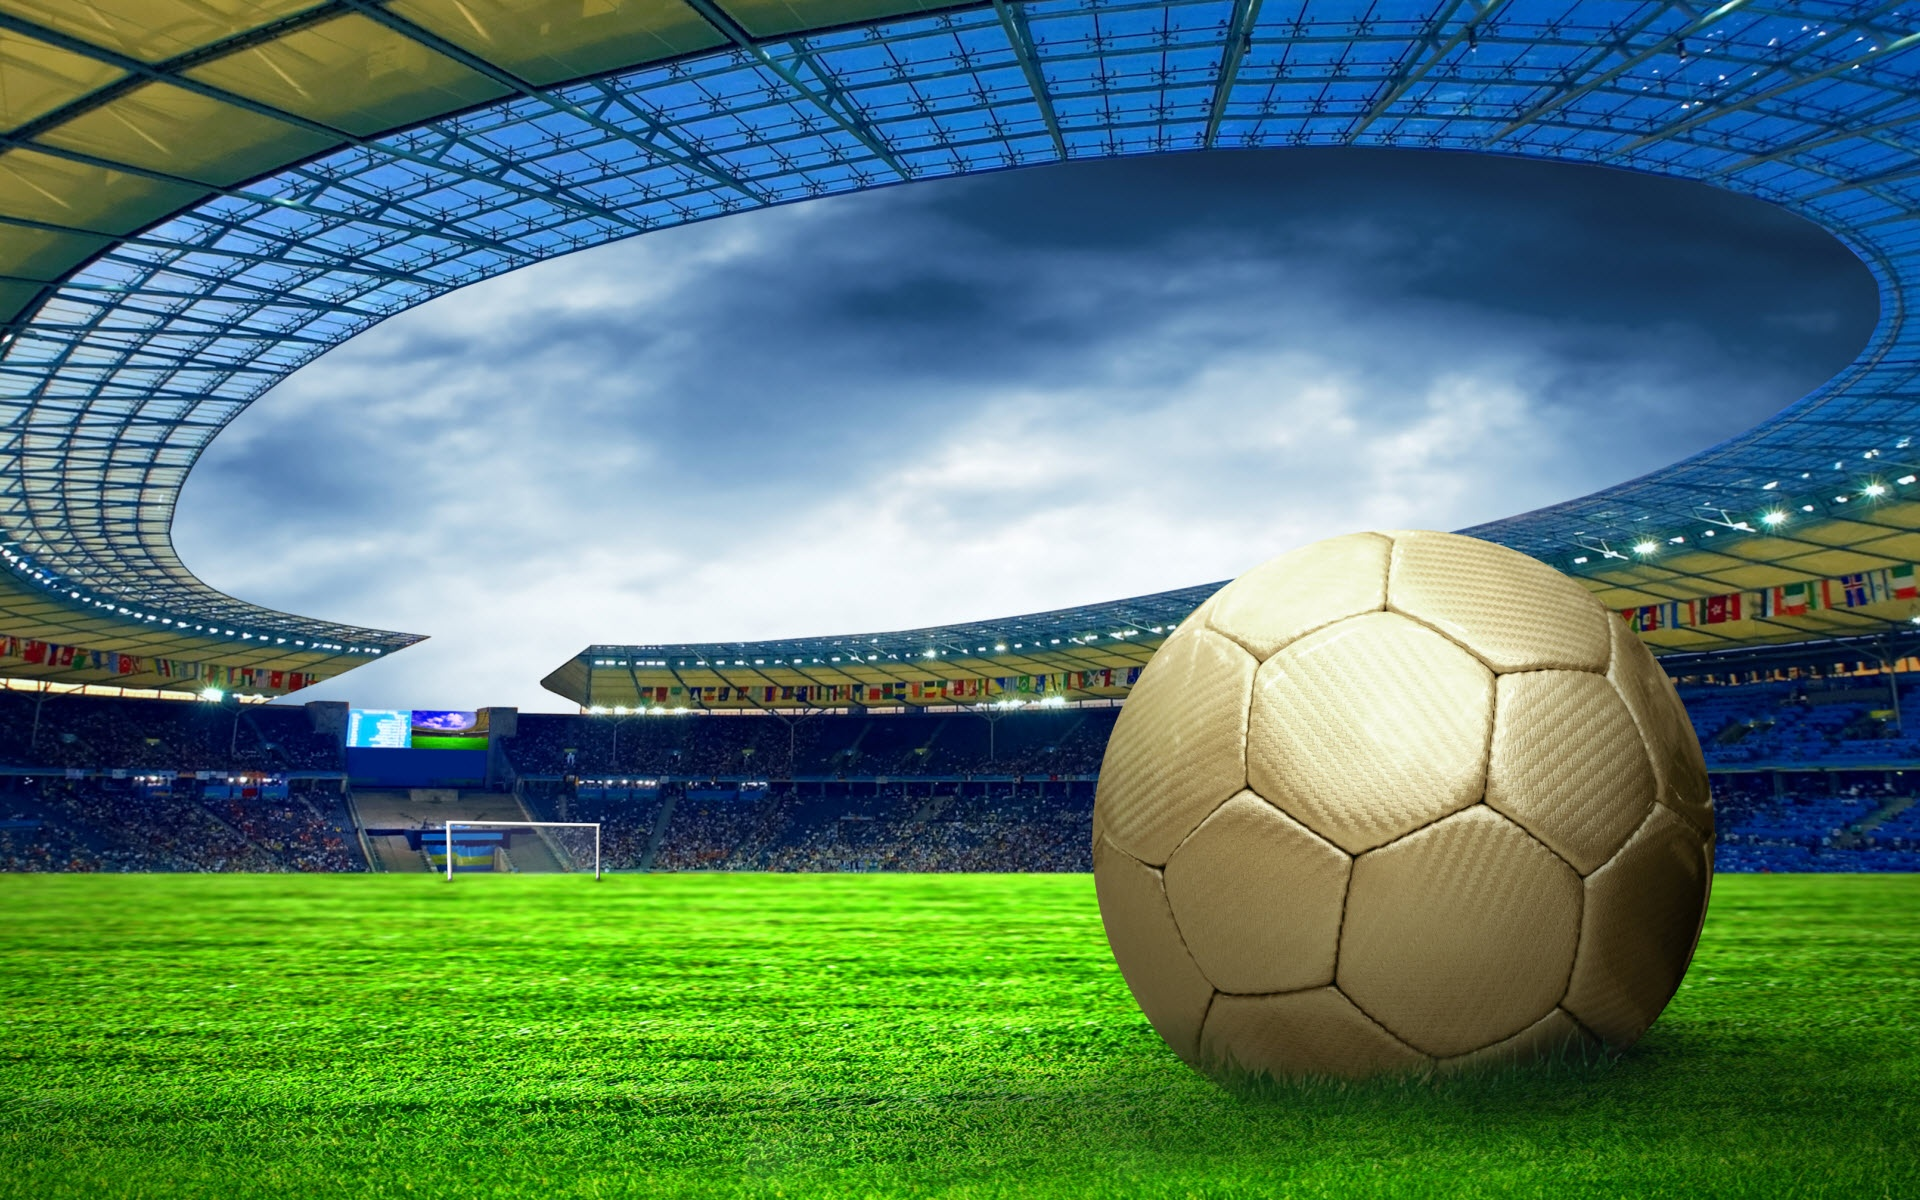 Football & Stadium Wallpapers in jpg format for free download